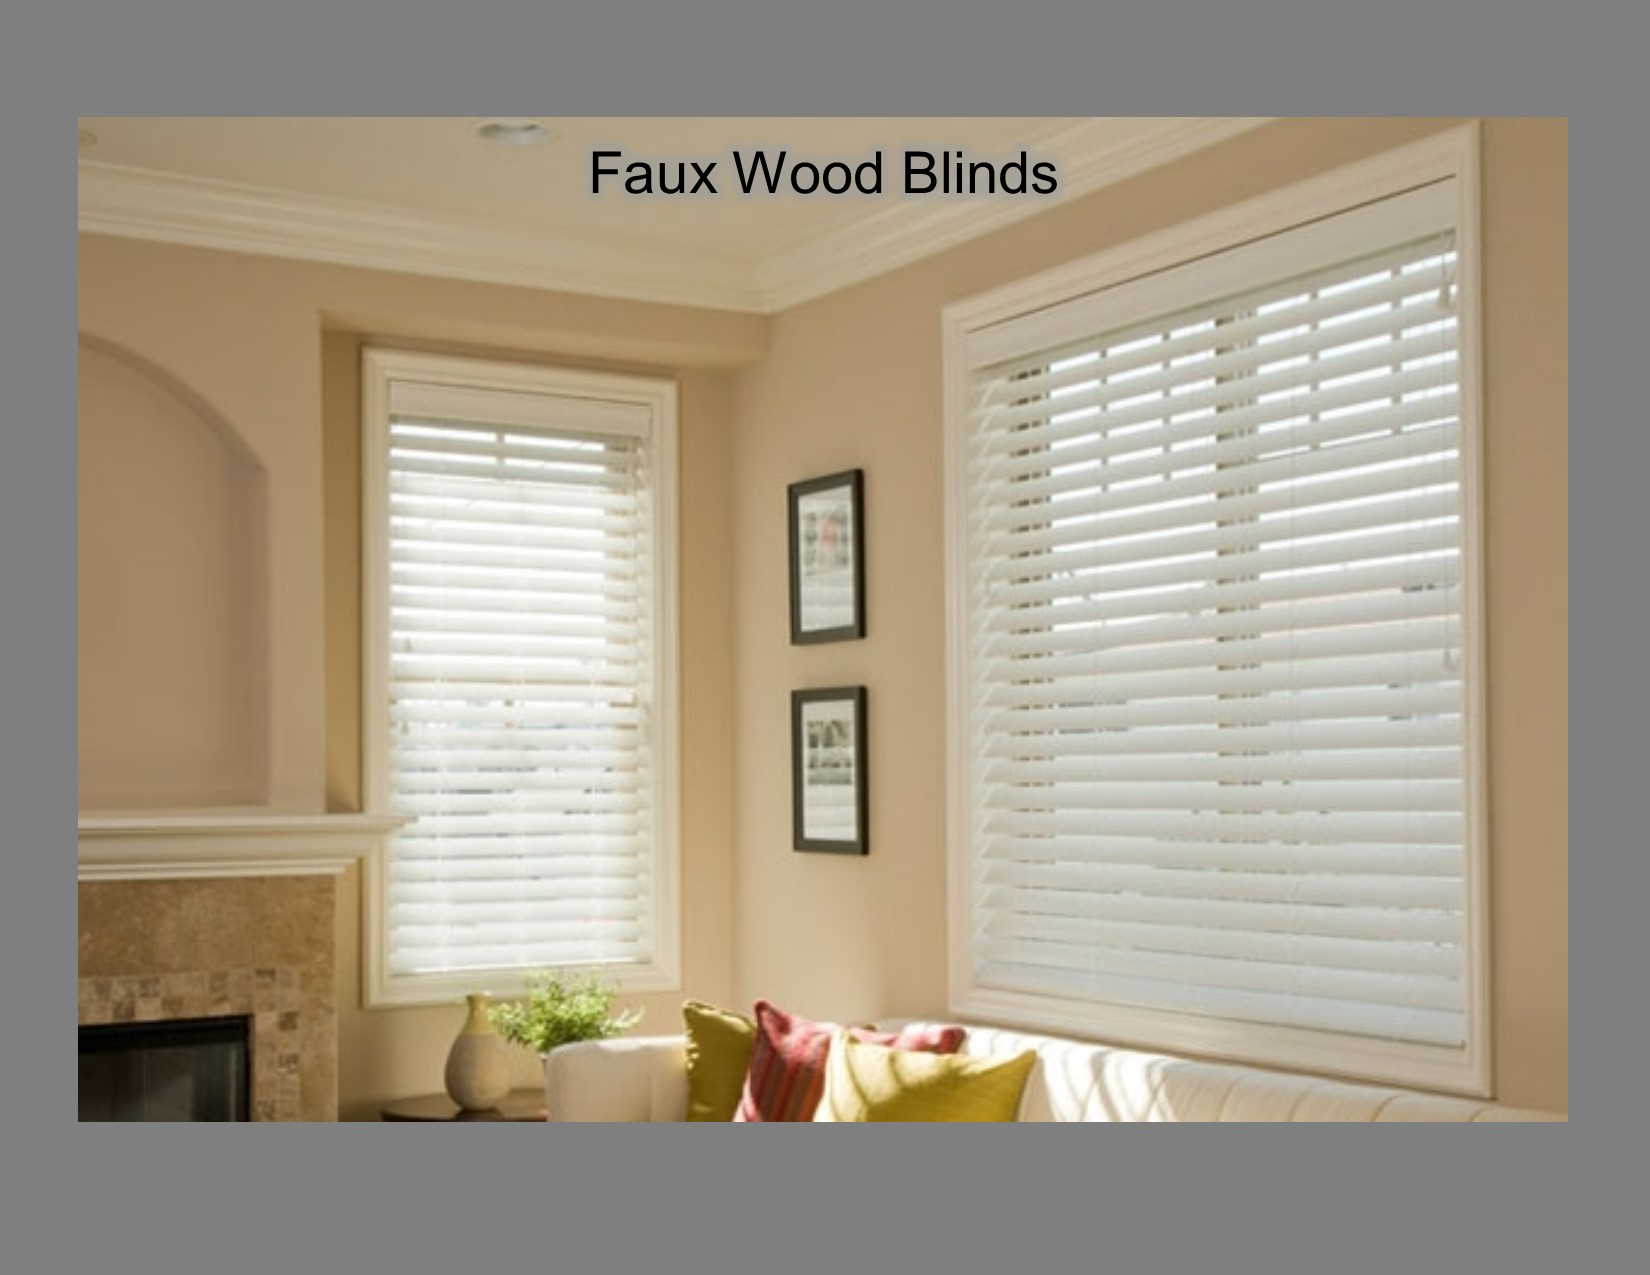 Faux_Wood_Blinds.jpg